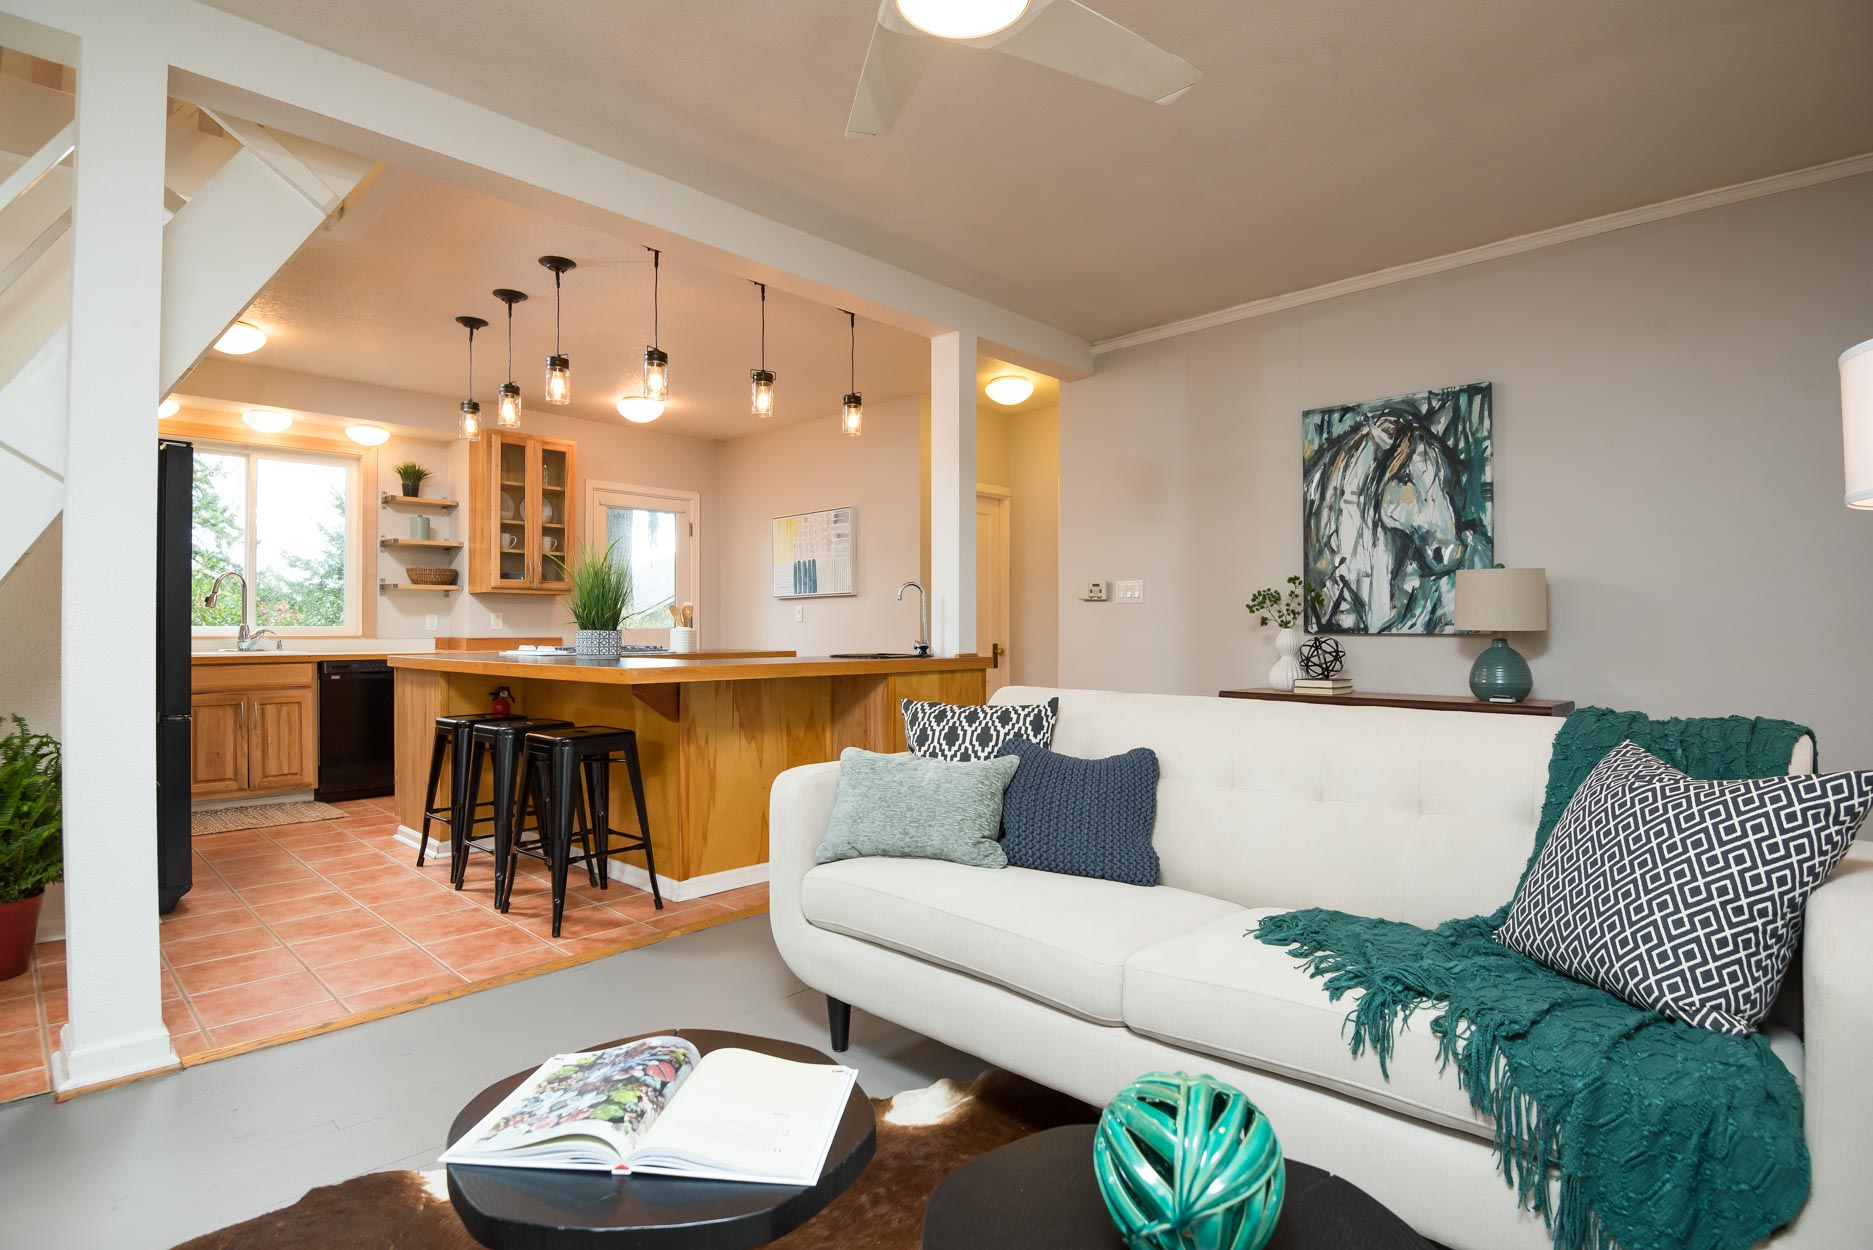 Lofty lifestyle available now in multnomah village living room realty portland real estate for Living room realty portland or